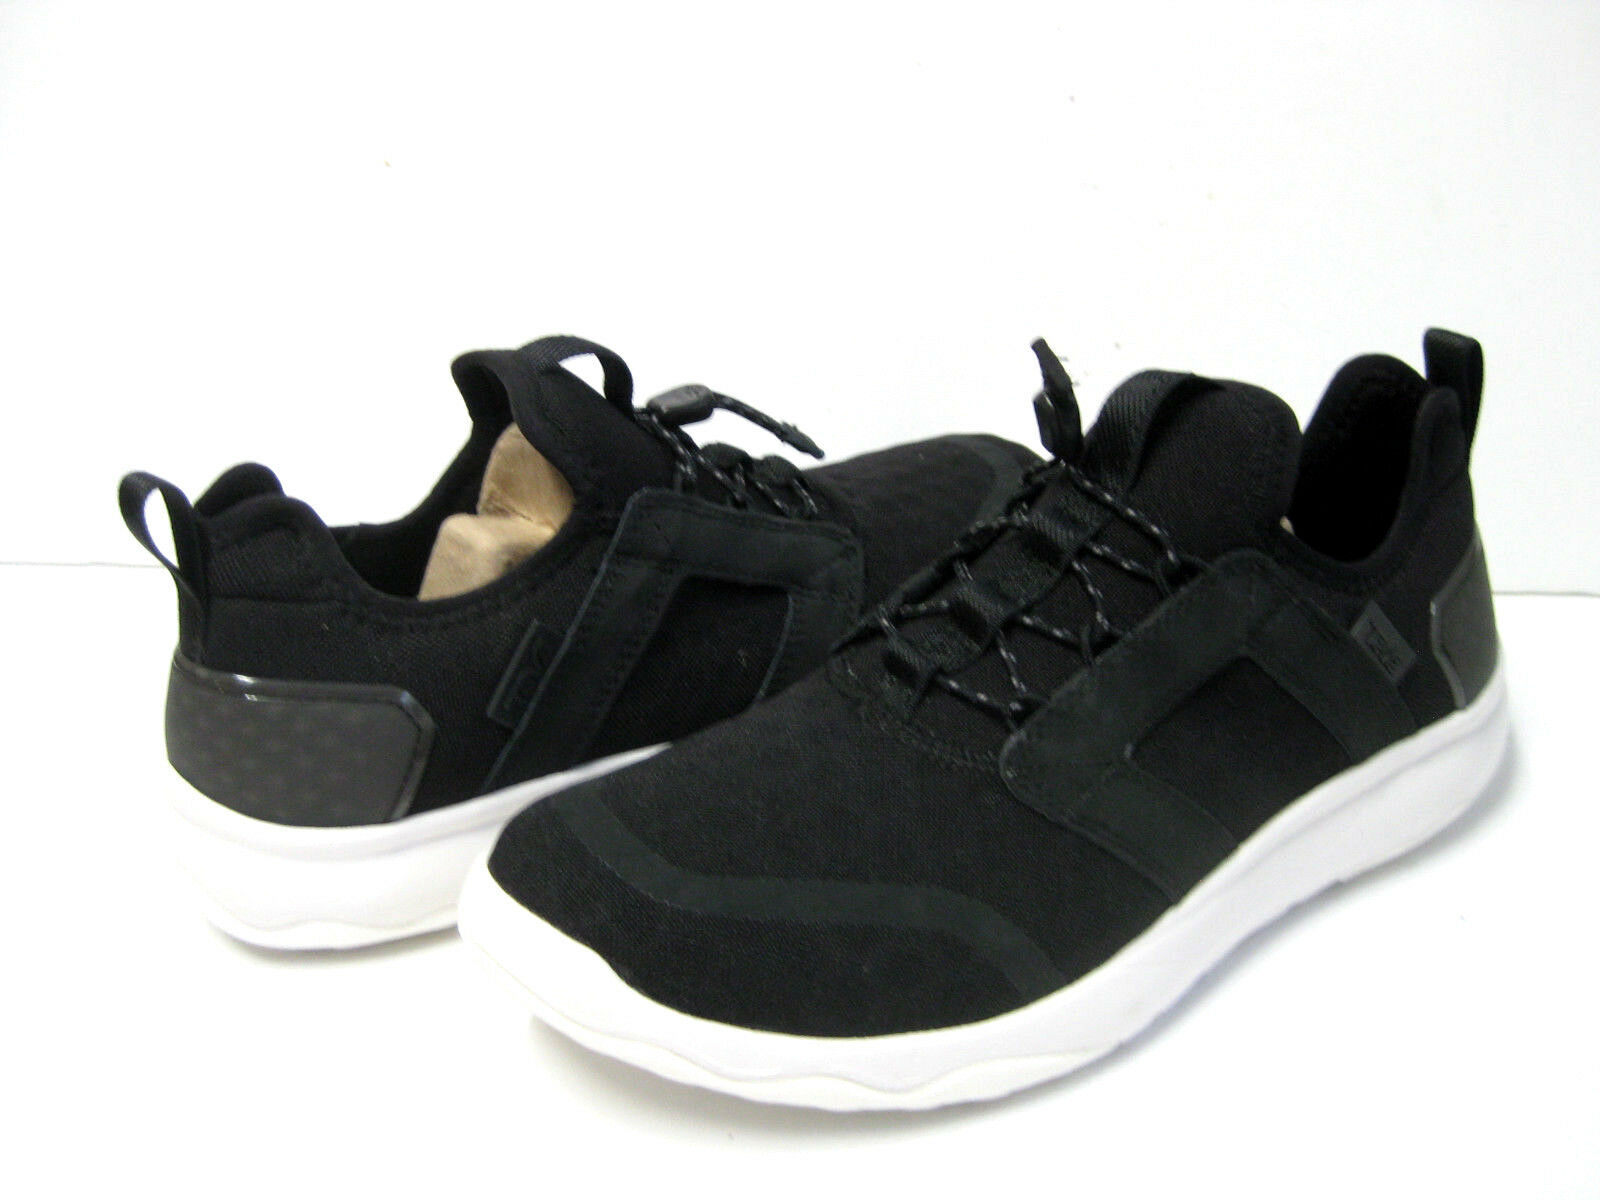 TEVA ARROWOOD SWIFT LACE TEXTURE WOMEN SHOES BLACK US US US 9  UK 7  EU 40 6d7c19